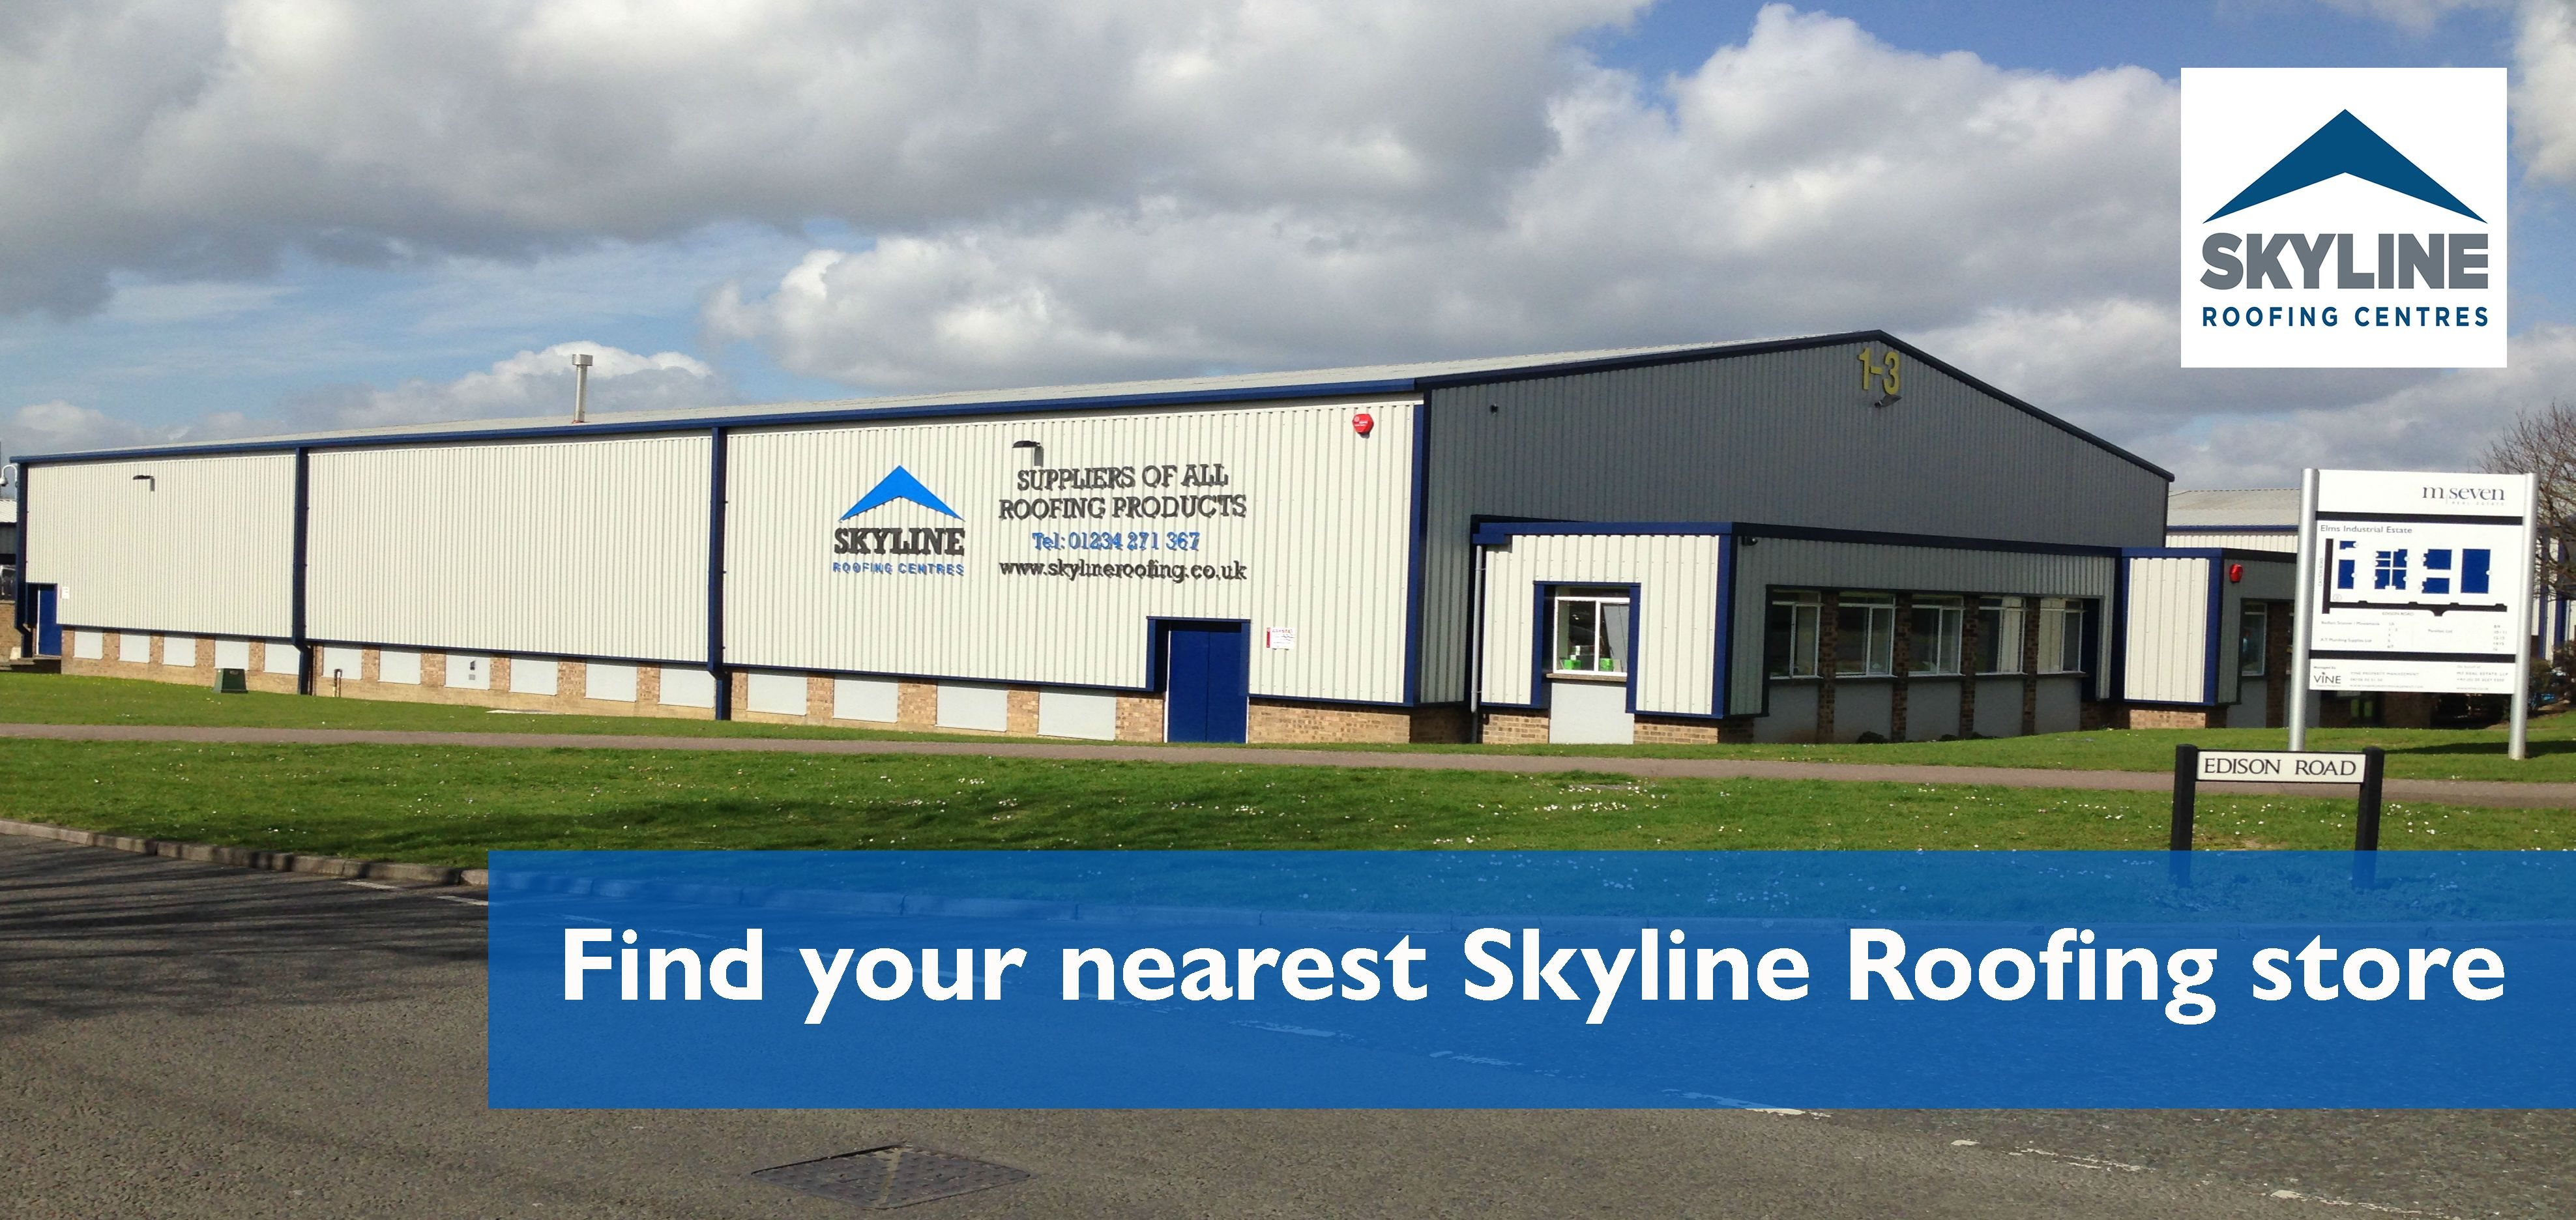 Roofing Supplies Roof Roofing Skyline Roof